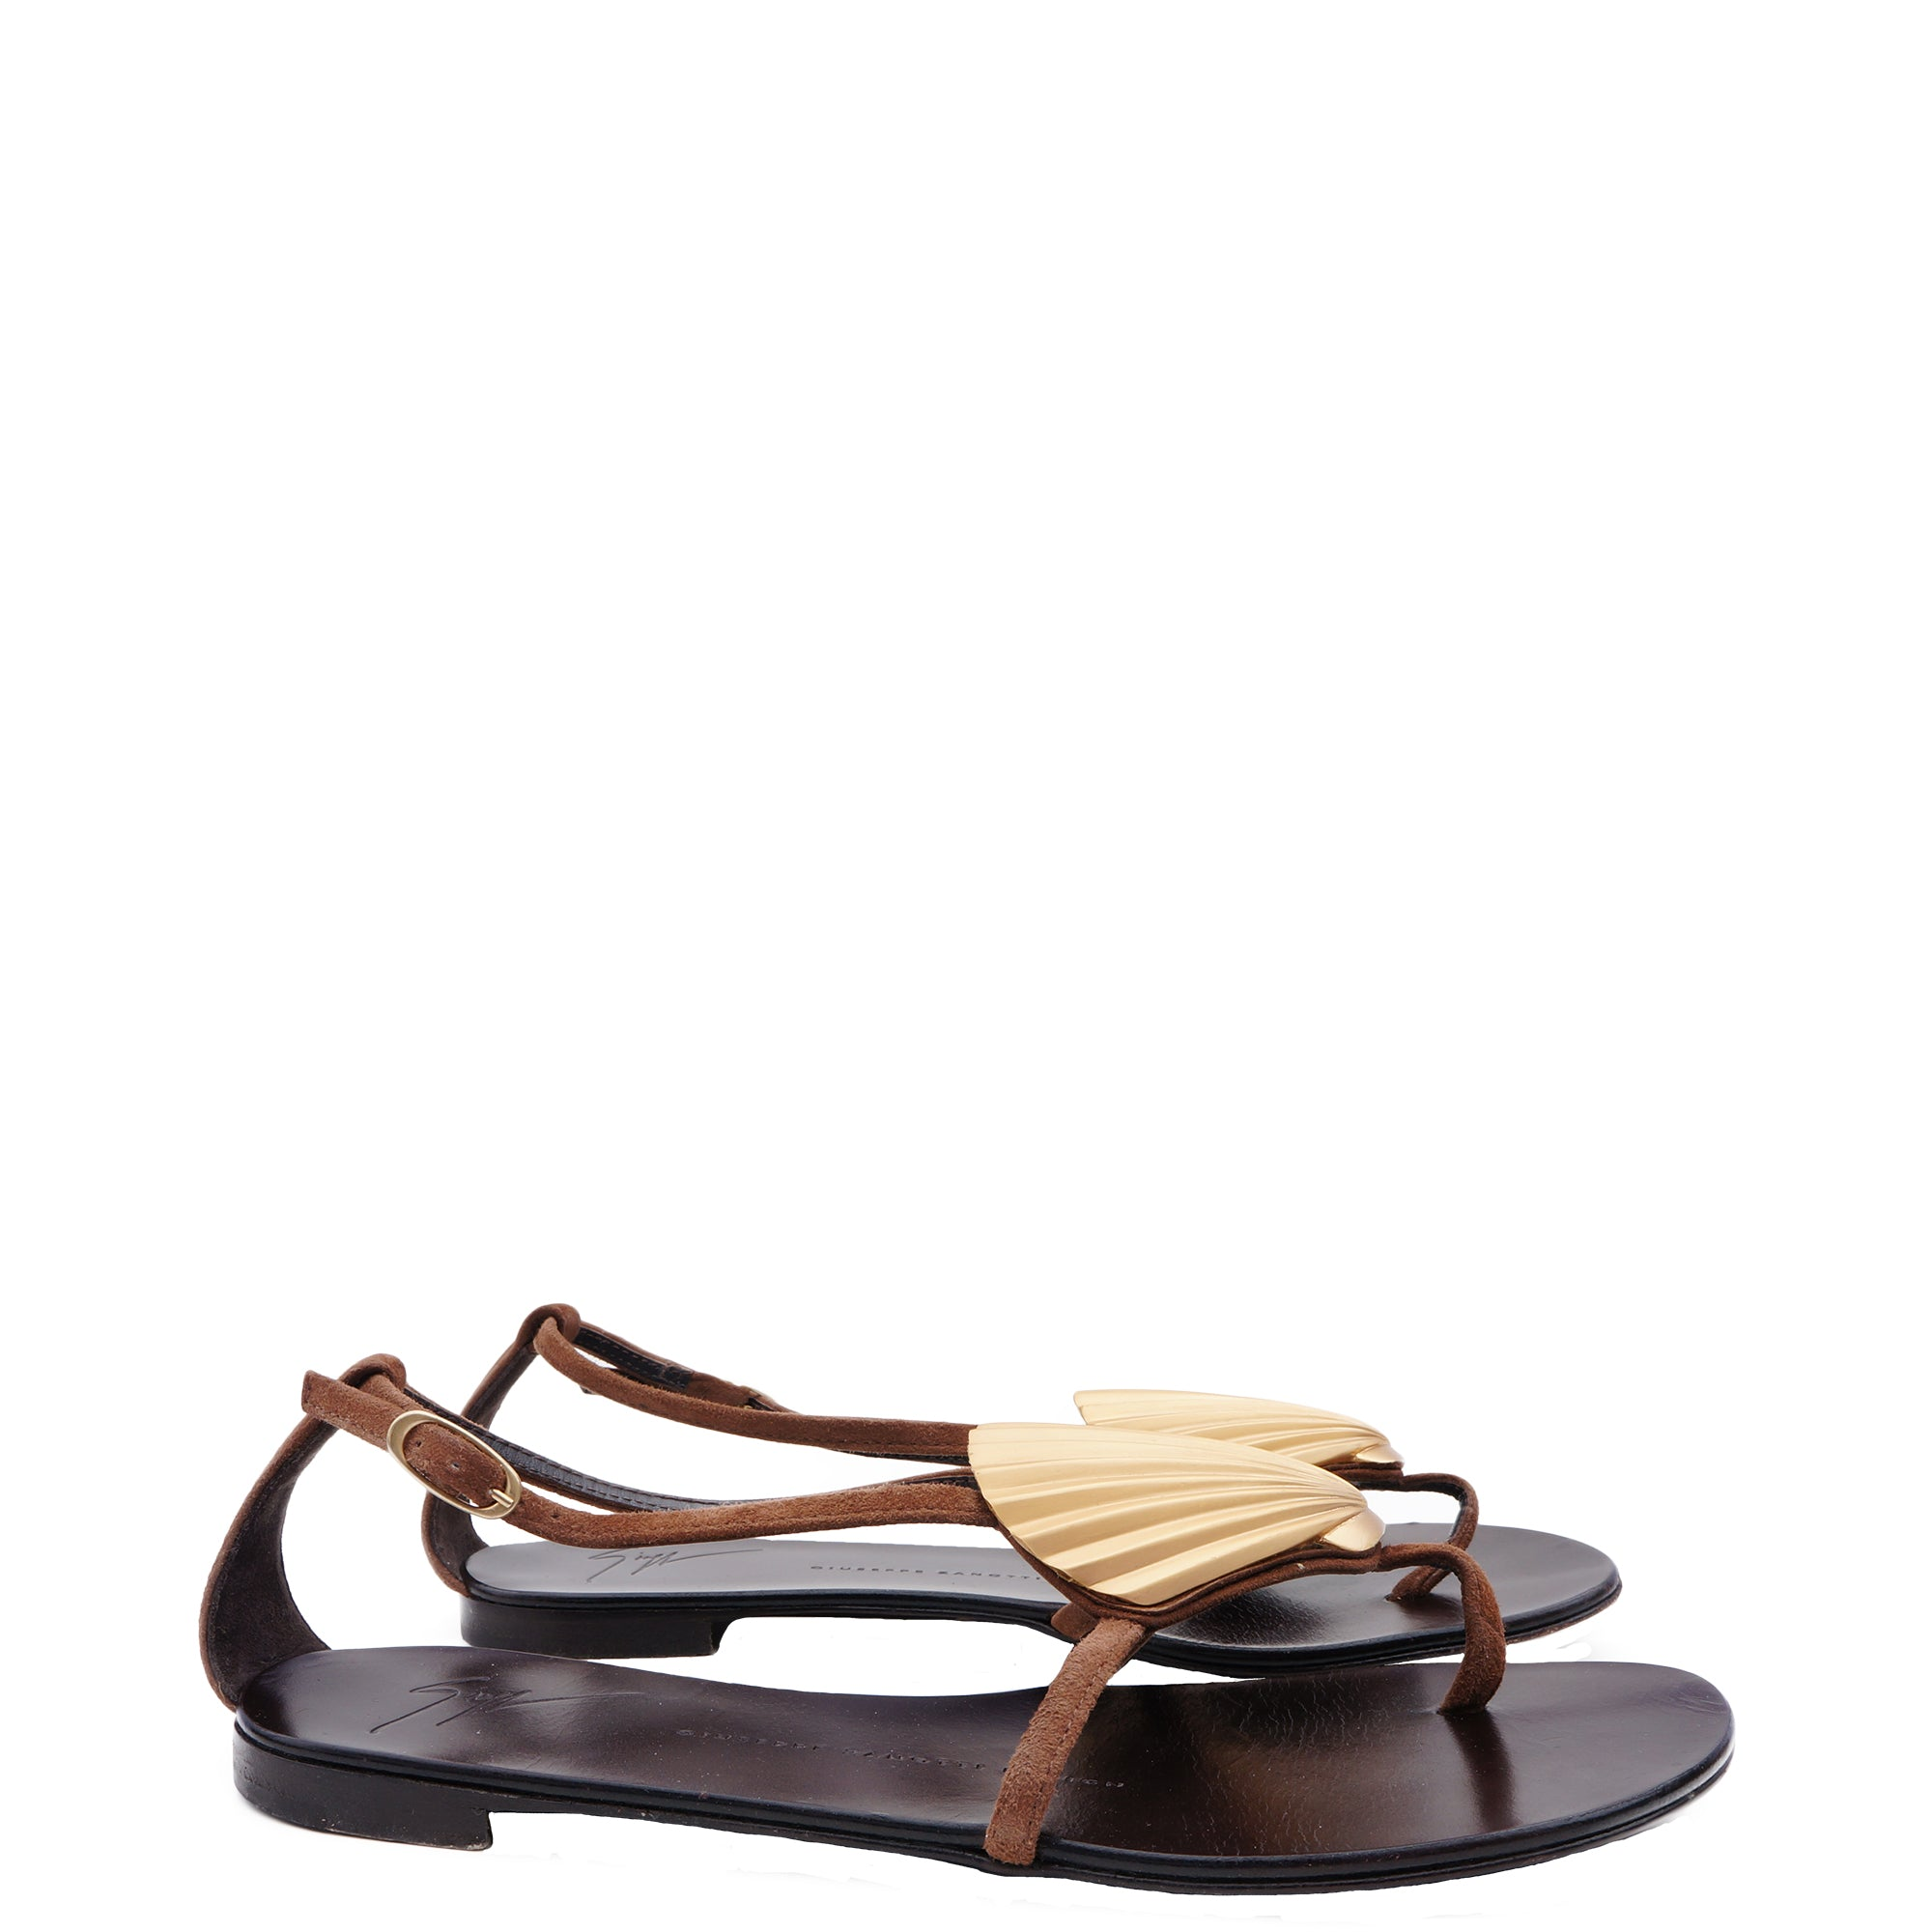 e9165957c6872 ... canada giuseppe zanotti brown suede gold shell sandals shop the best  value on authentic designer used